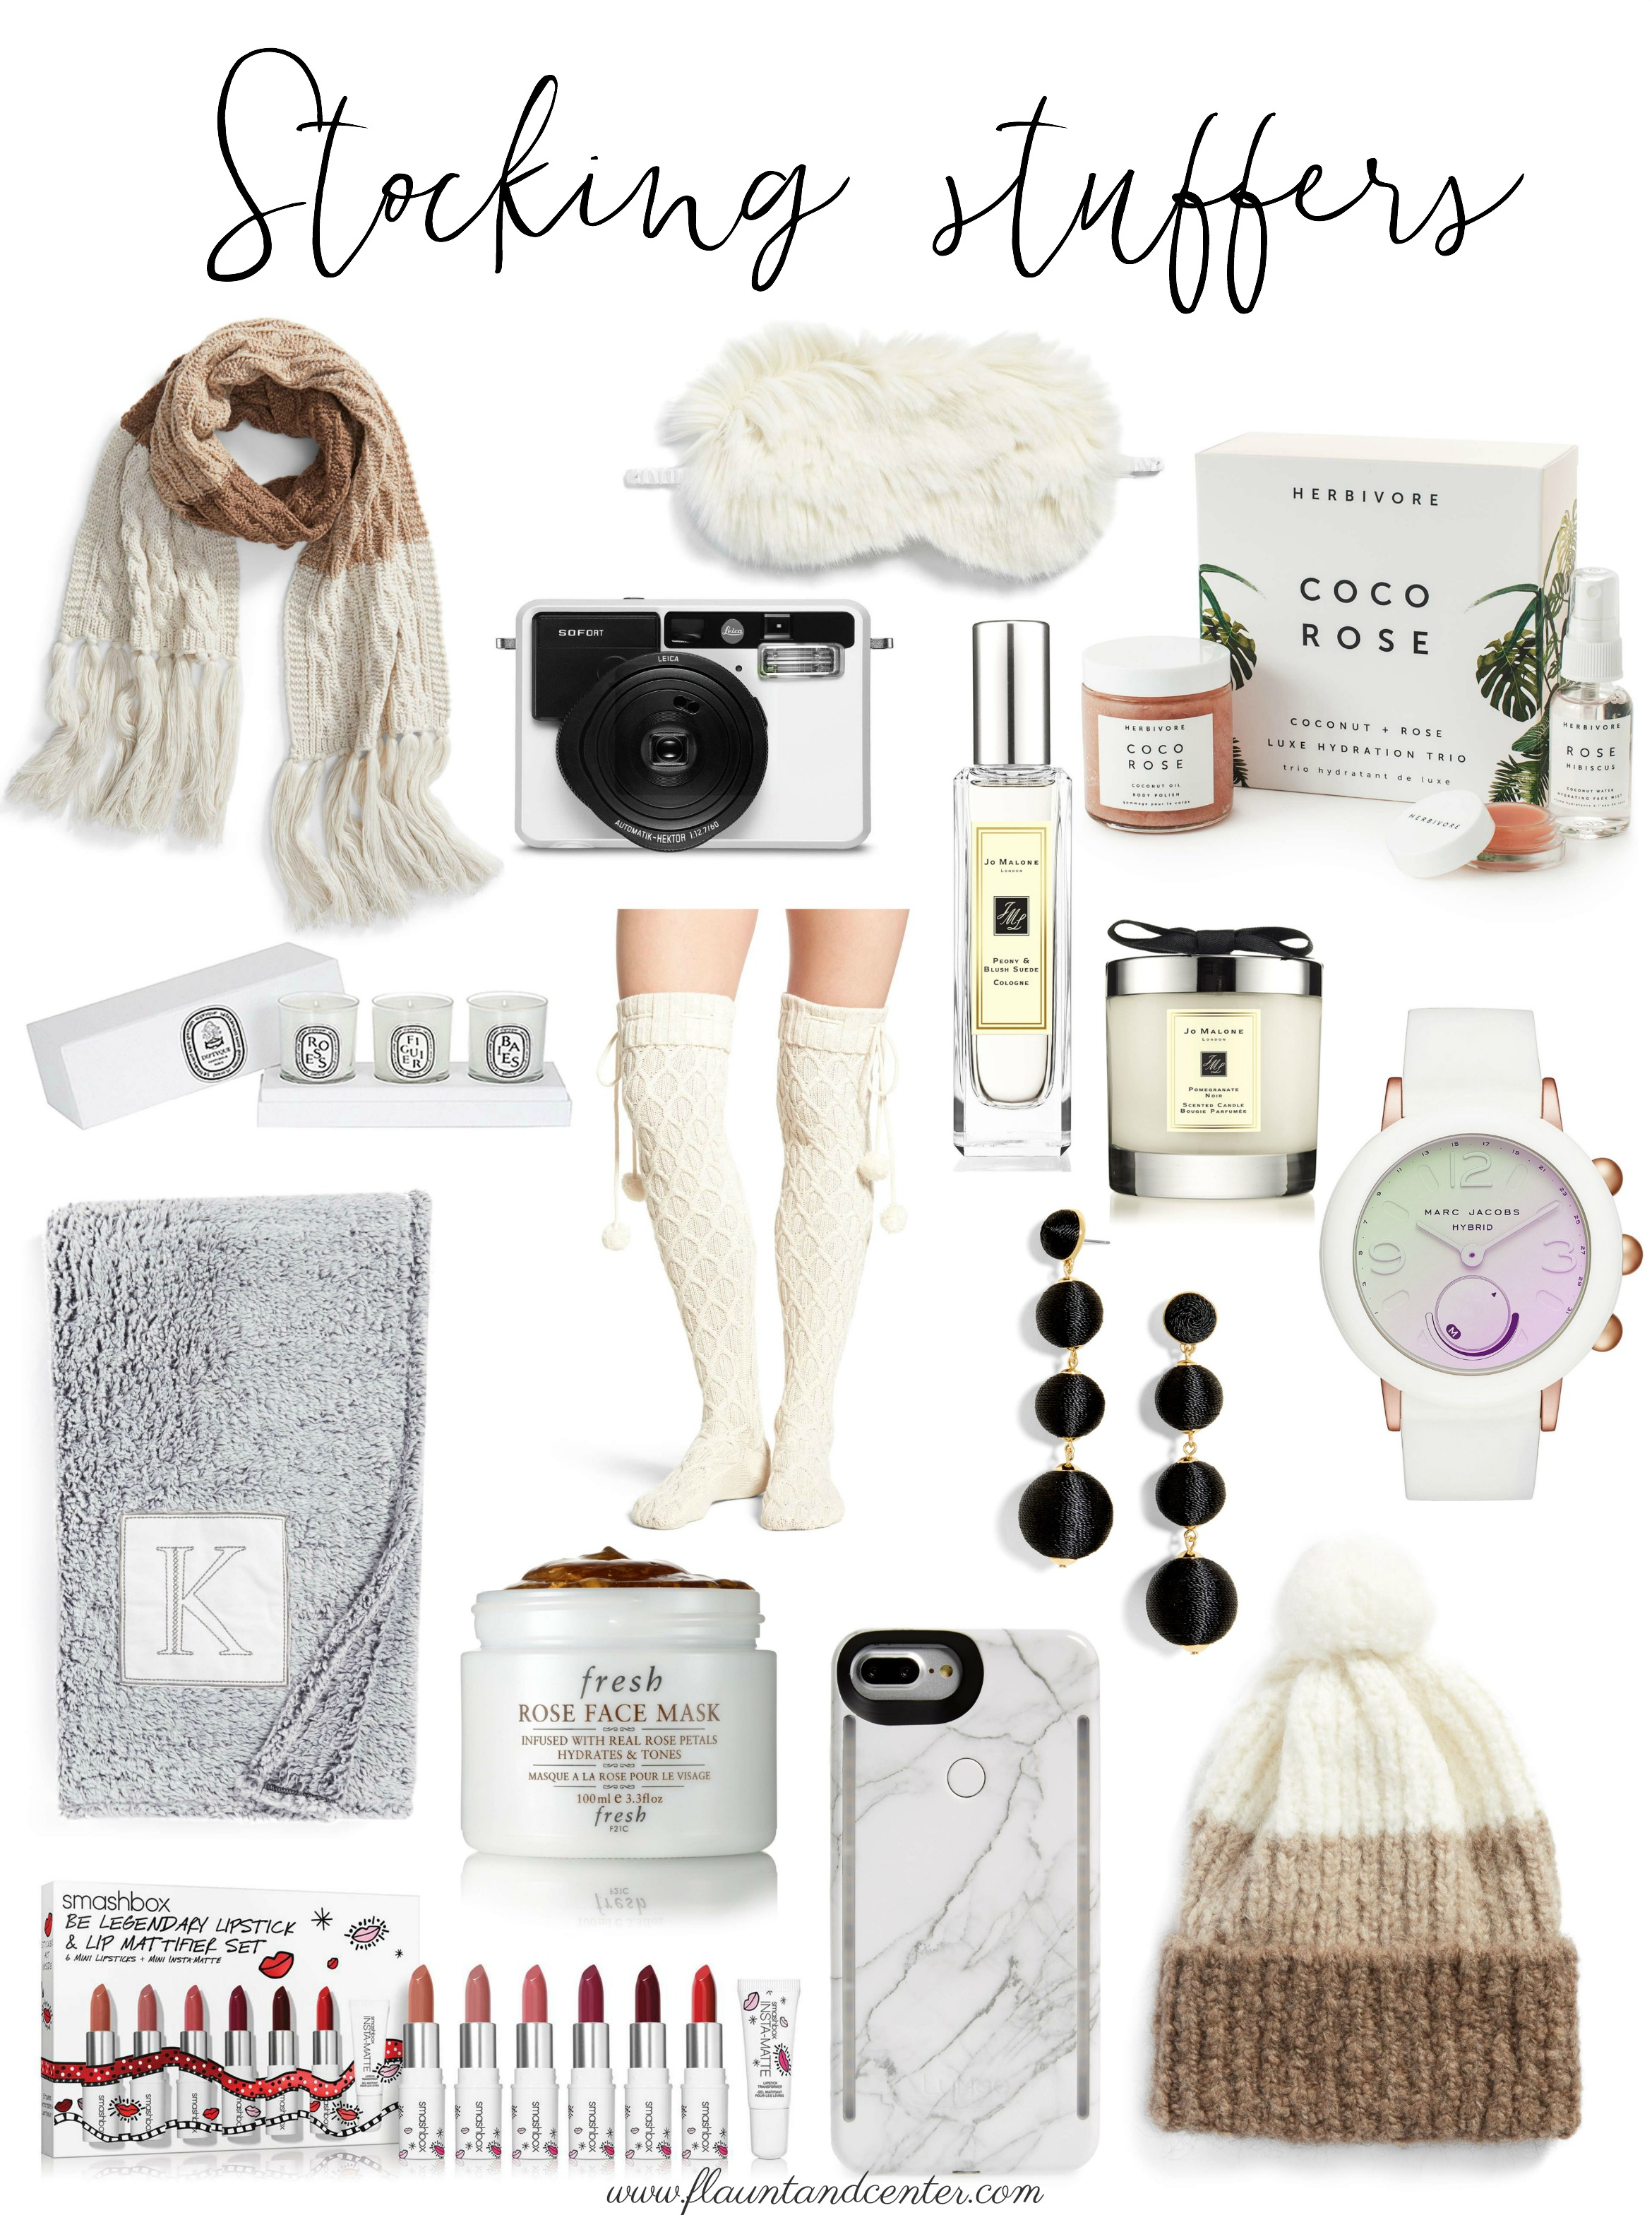 Stocking Stuffers  Scarf   Sofort Instant Camera   Faux Fur Sleep Mask   Coco Rose Lux Hydration Trio   Jo Malone Cologne   Jo Malone Candle   Votive Candle Set   Cable Knit Over the Knee Socks   Marc Jacobs Riley Hybrid Smartwatch   Monogram Throw Blanket   Fresh Rose Face Mask   Ball Shoulder Duster Earrings   iPhone Lighted Case   Lipstick Set   Tricolor Pom Beanie  